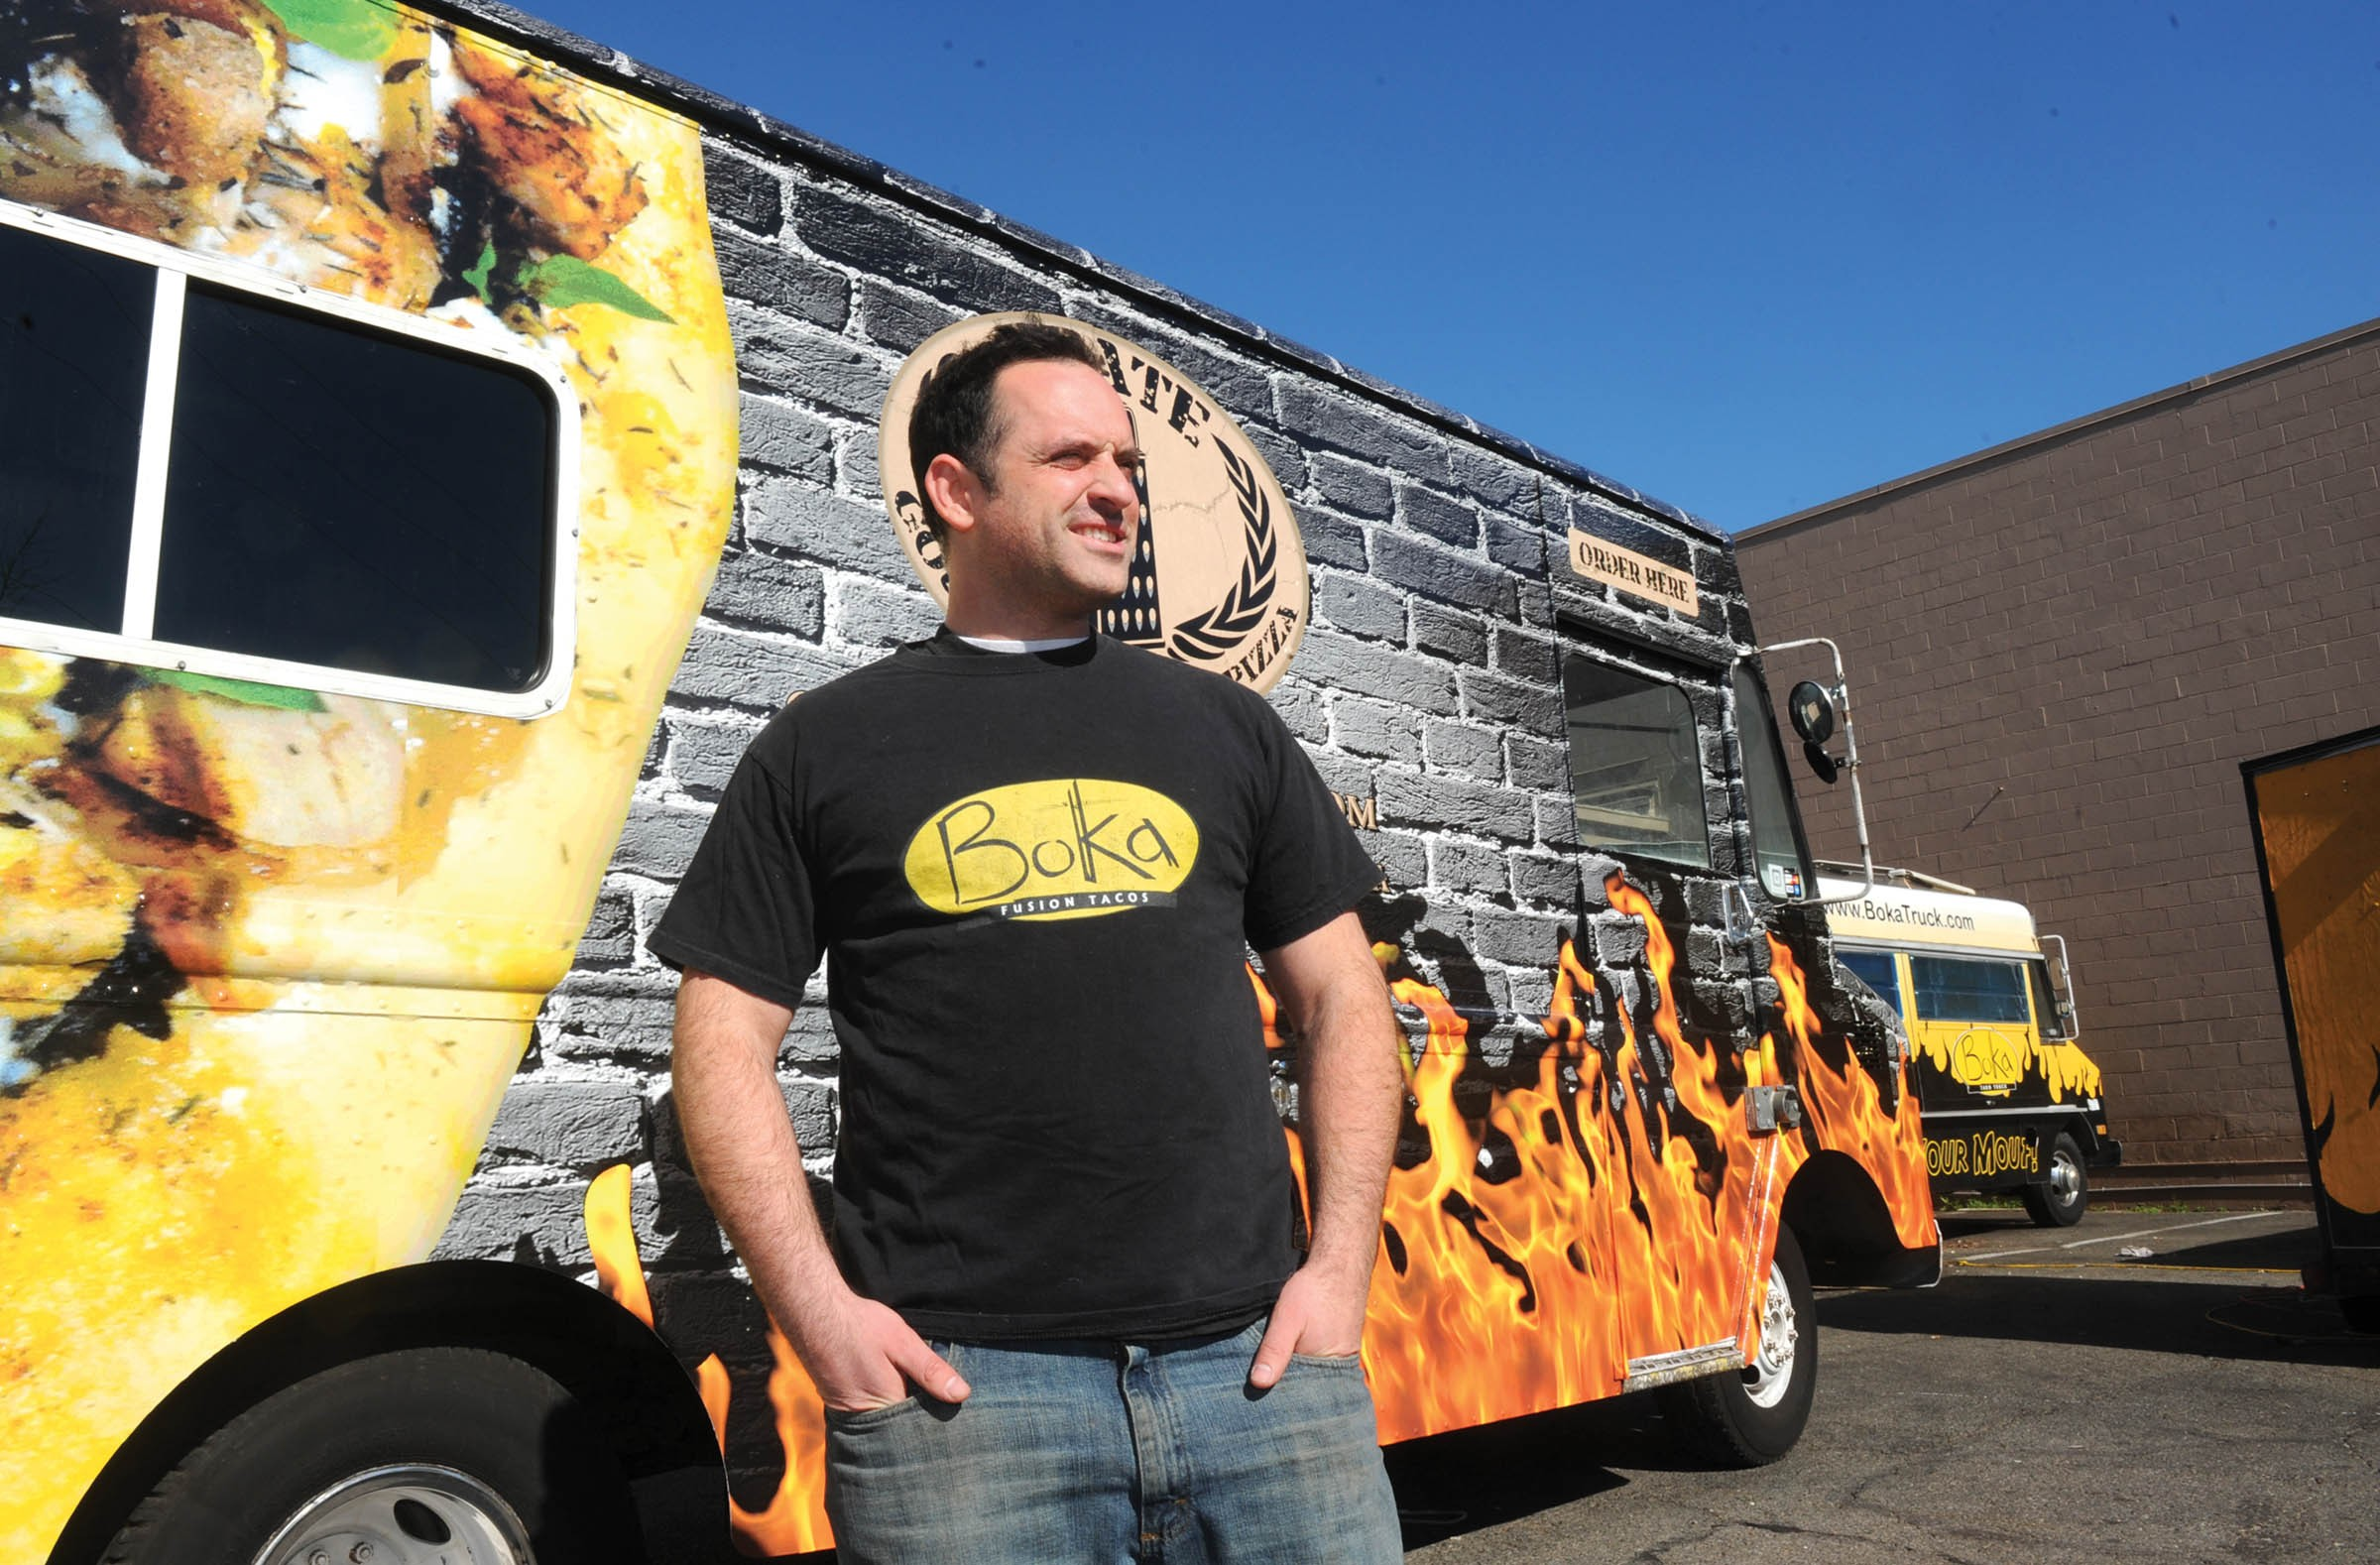 Patrick Harris turns up the heat with Grate Pizza, building on his Boka taco truck empire and debuting at Maymont this weekend. - SCOTT ELMQUIST